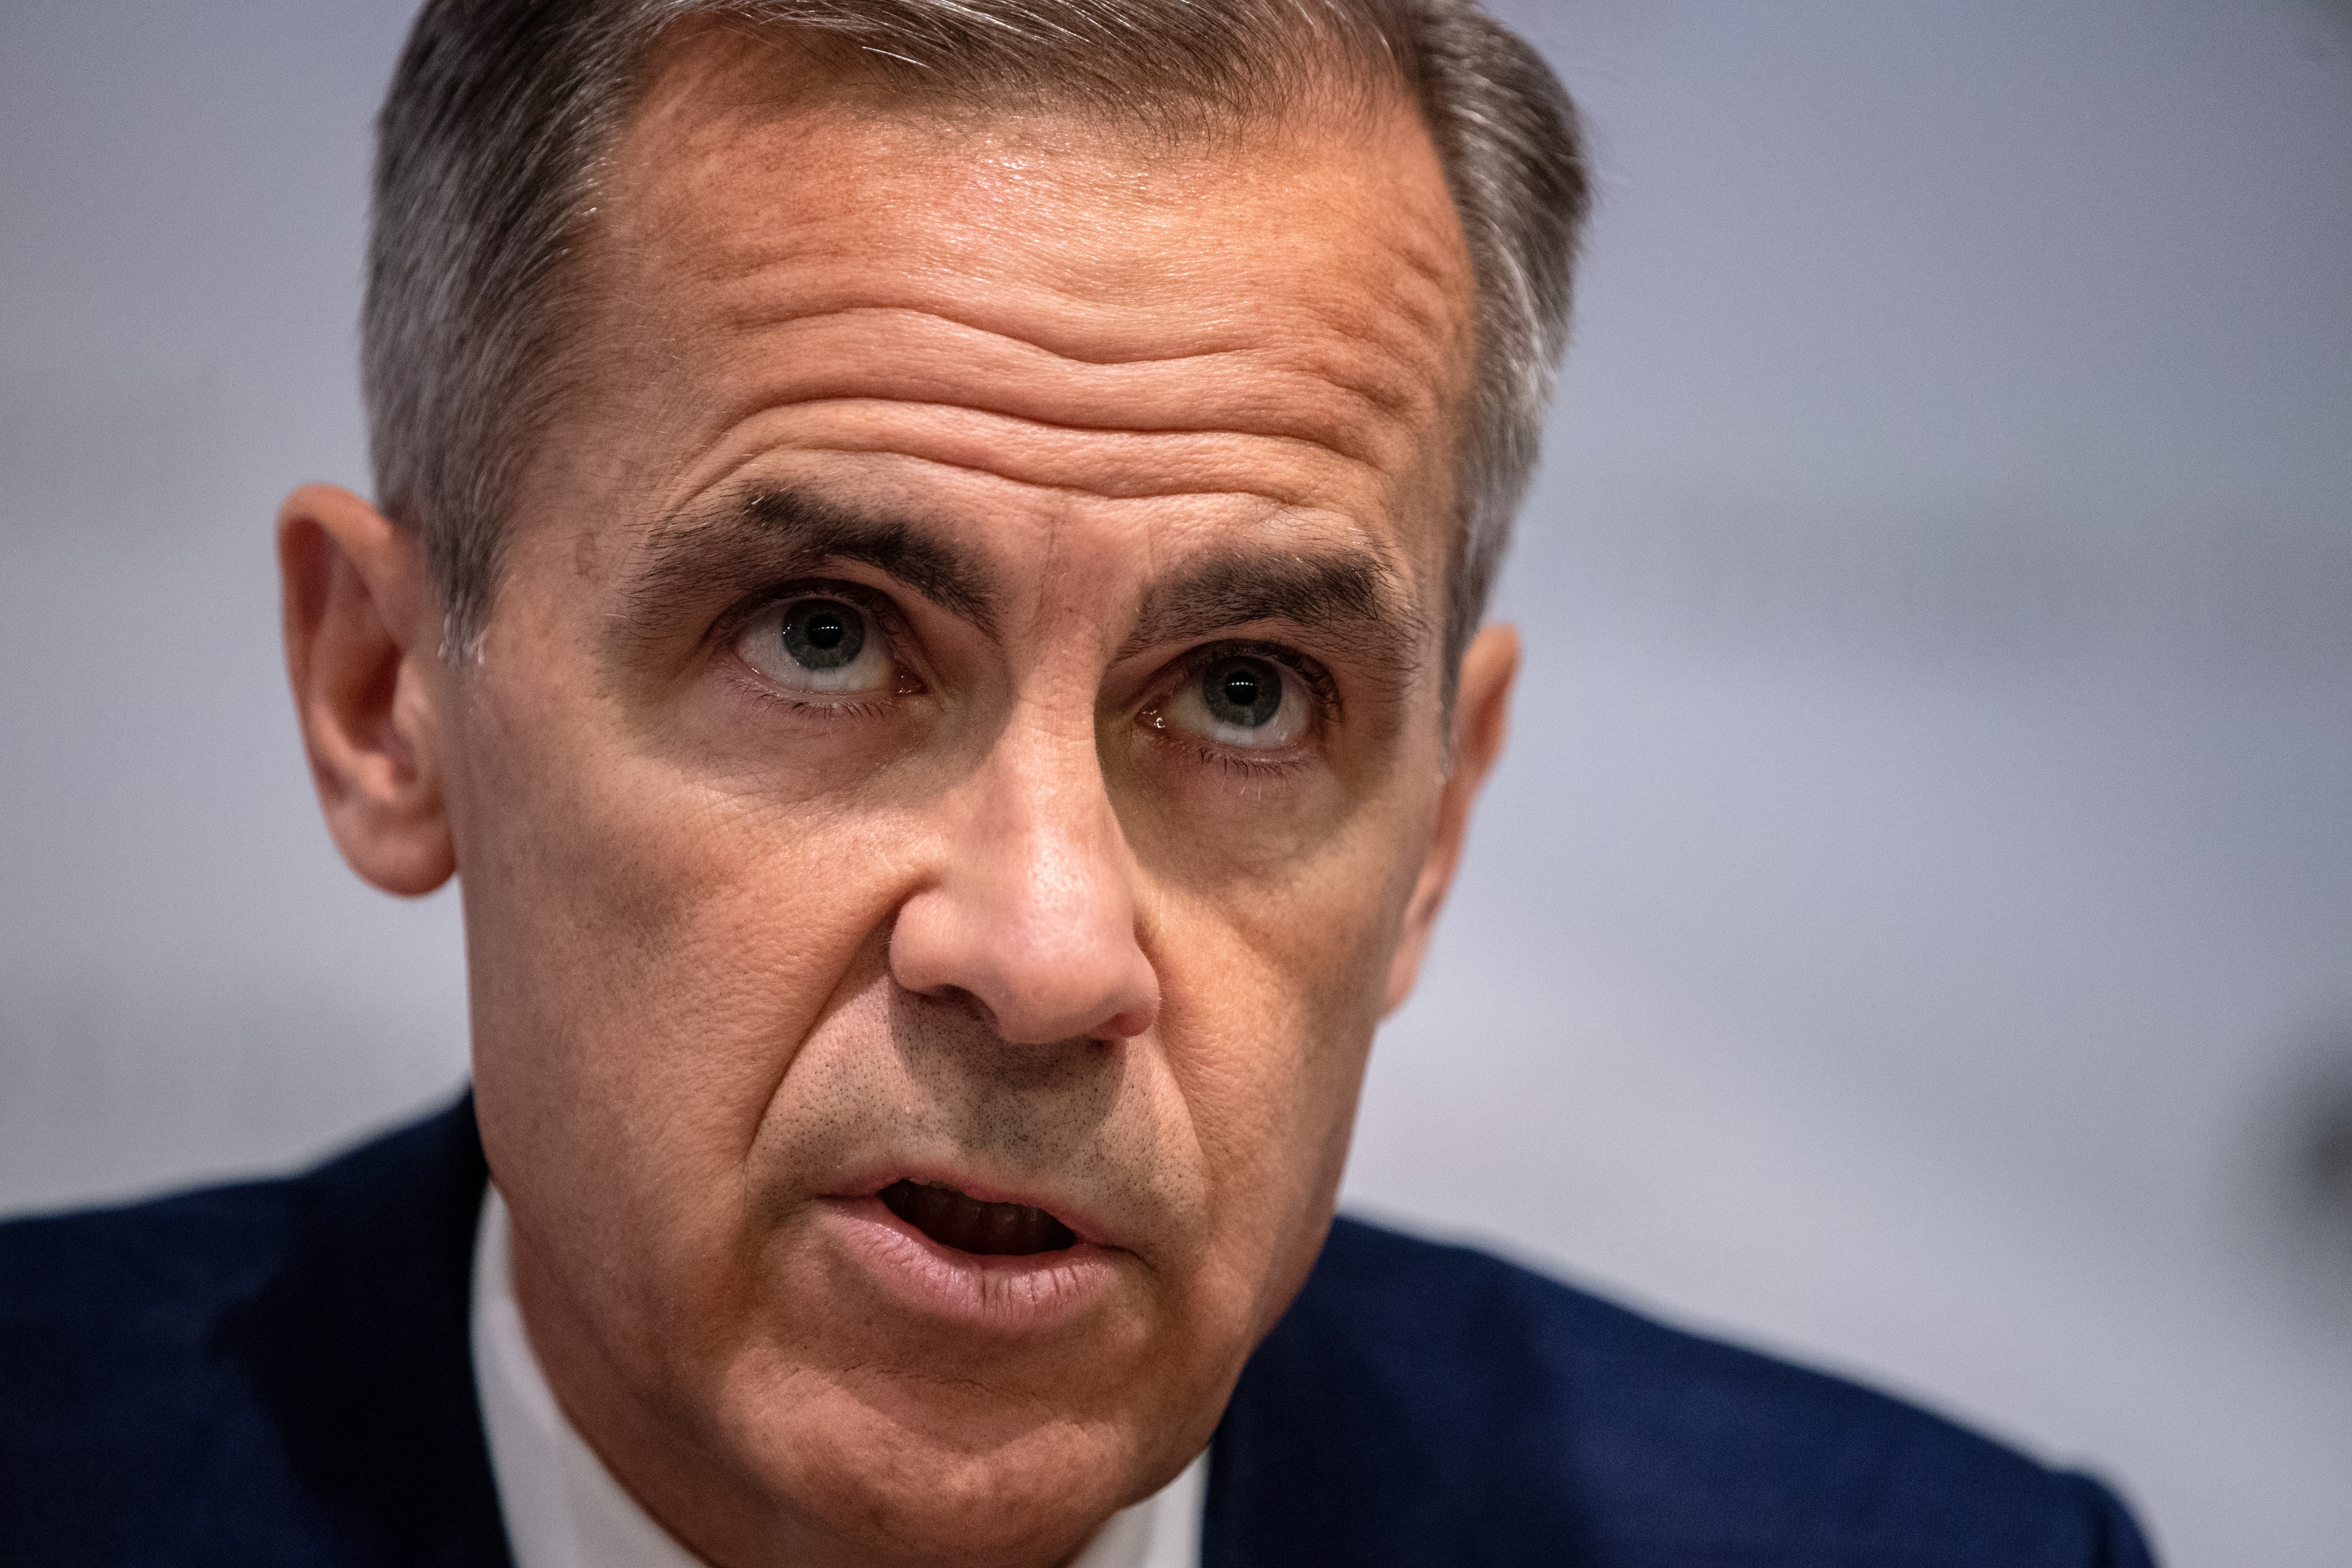 UK data show economy a bit weaker than expected: Carney